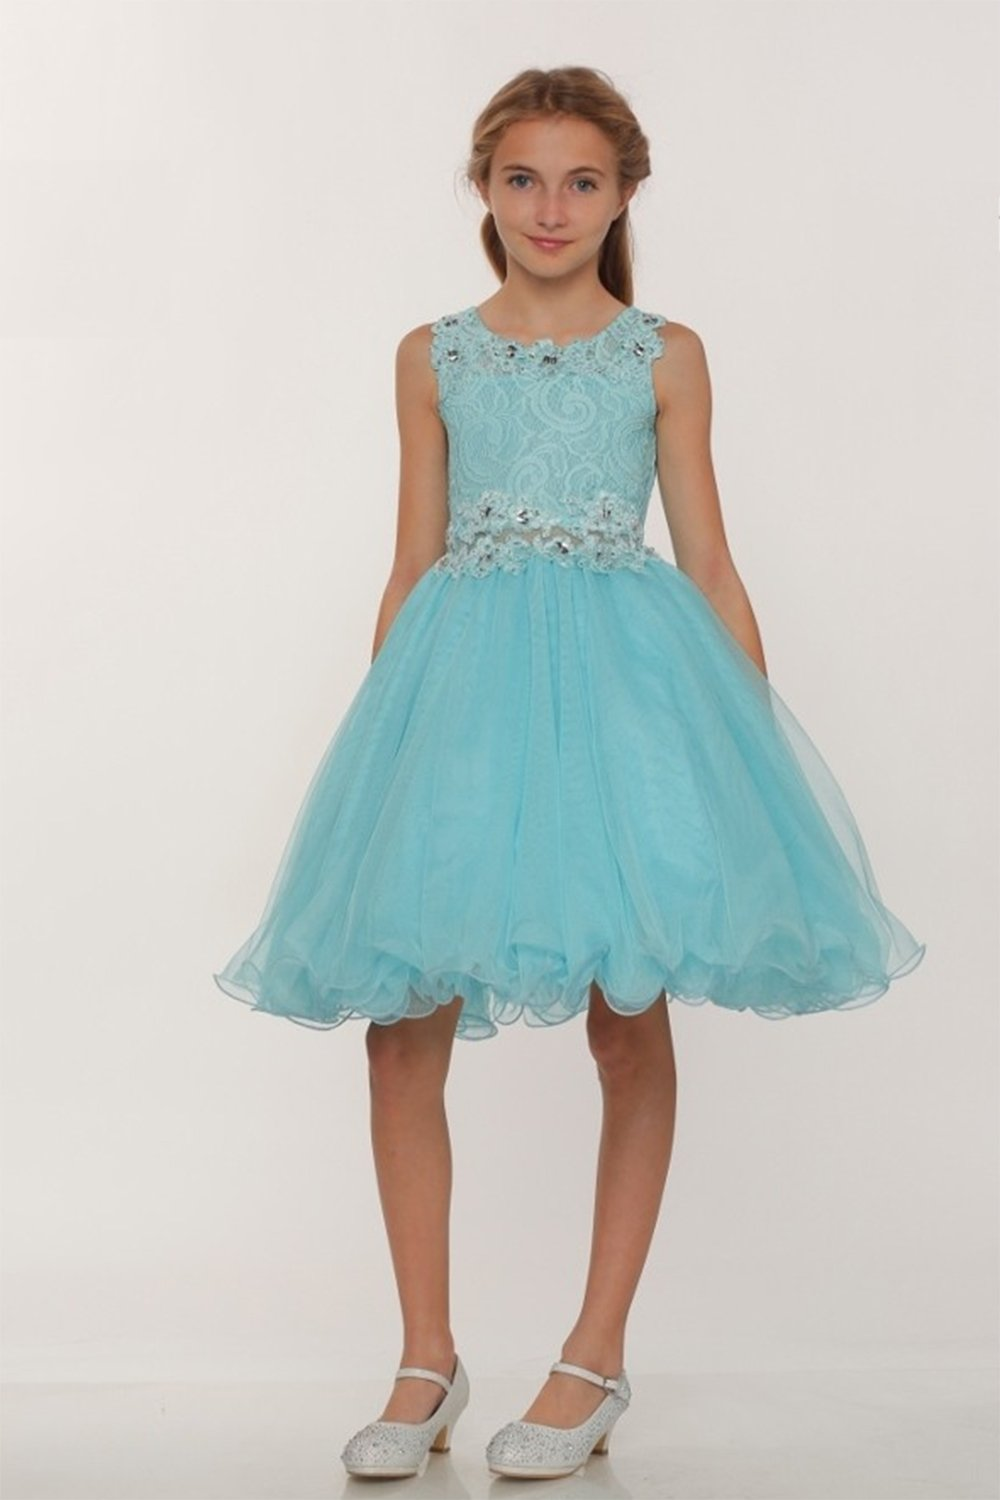 b40532966 Graduation Dresses For Girls - Nini Dress